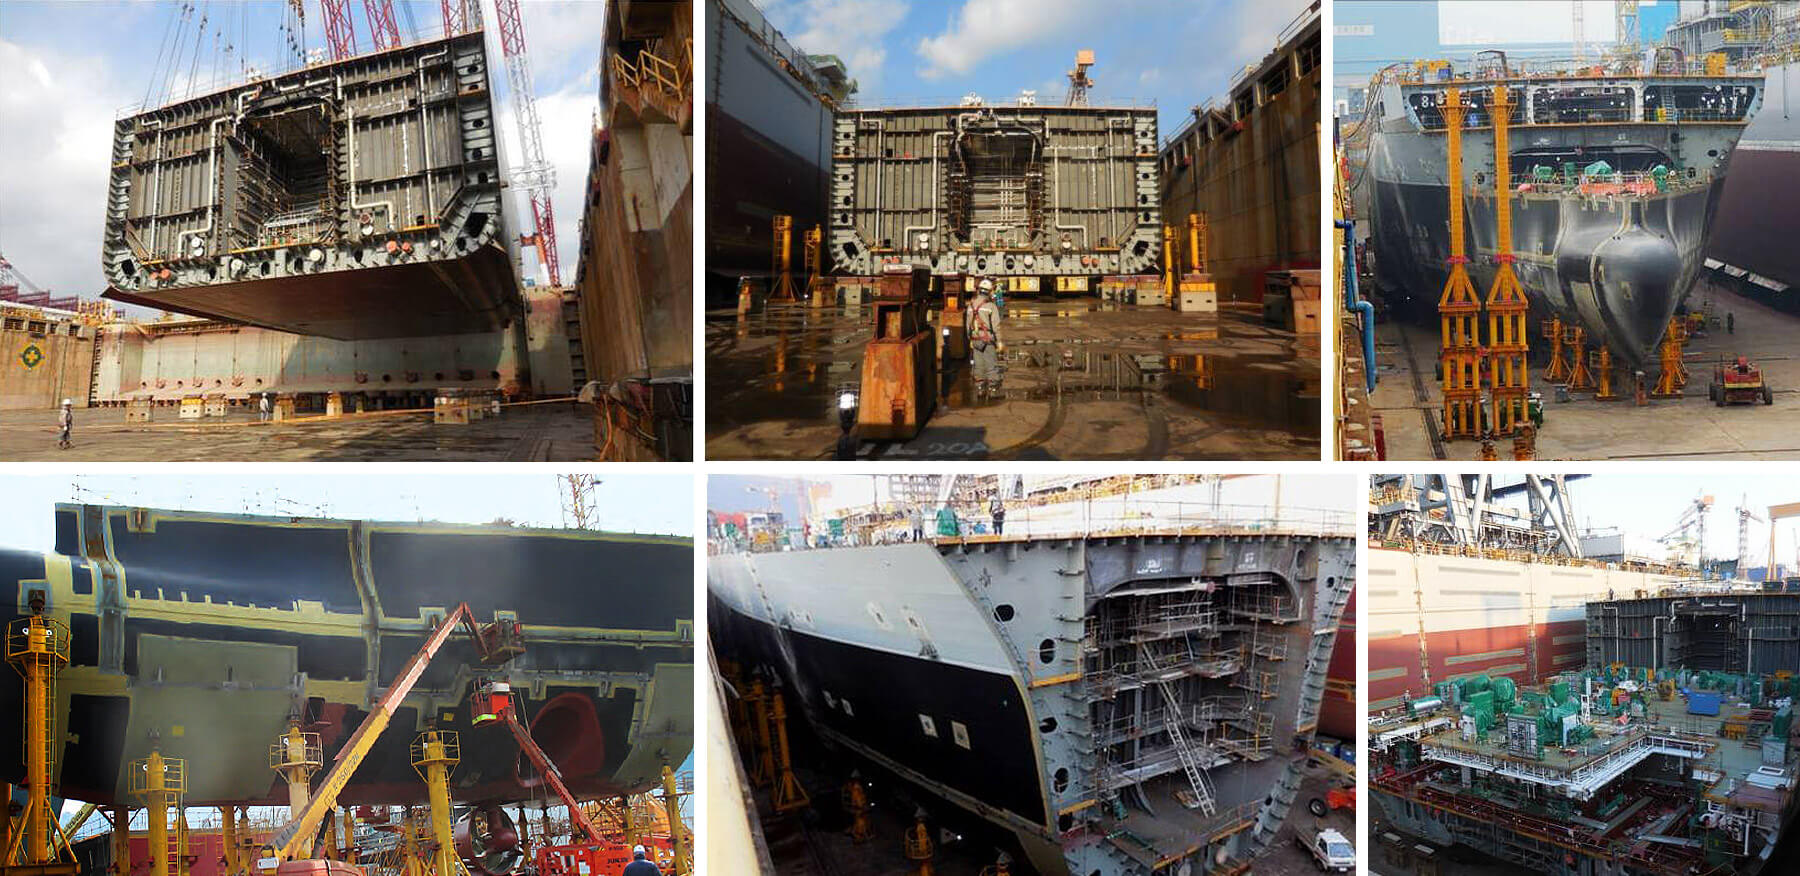 RFA Tidespring construction